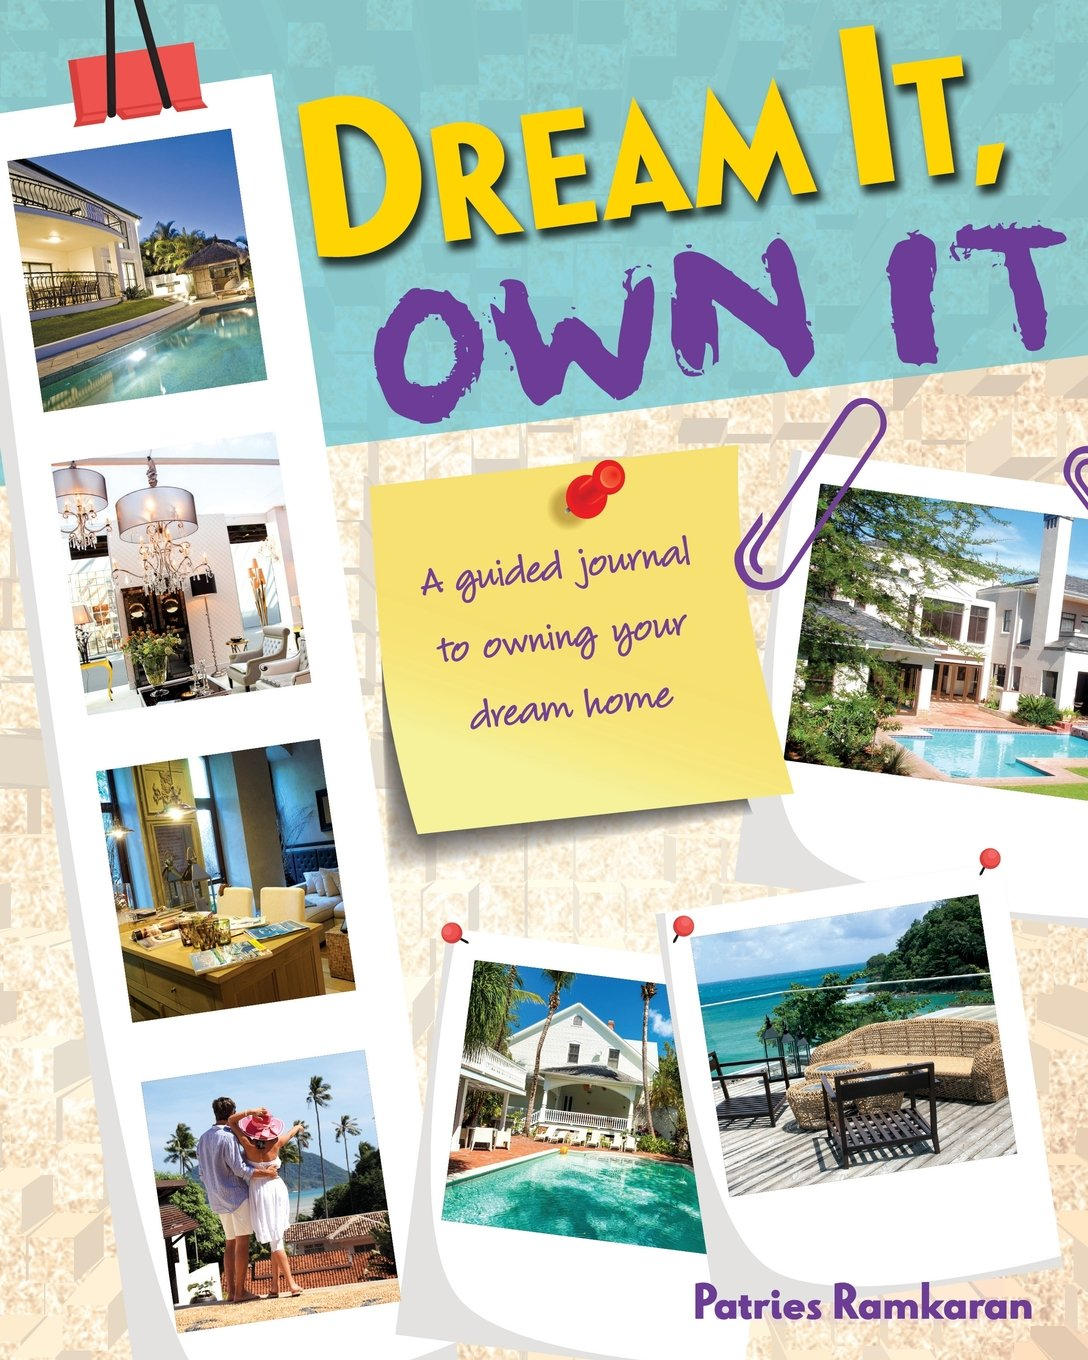 Dream IT Own IT: A guided journal to owning your DREAM HOME